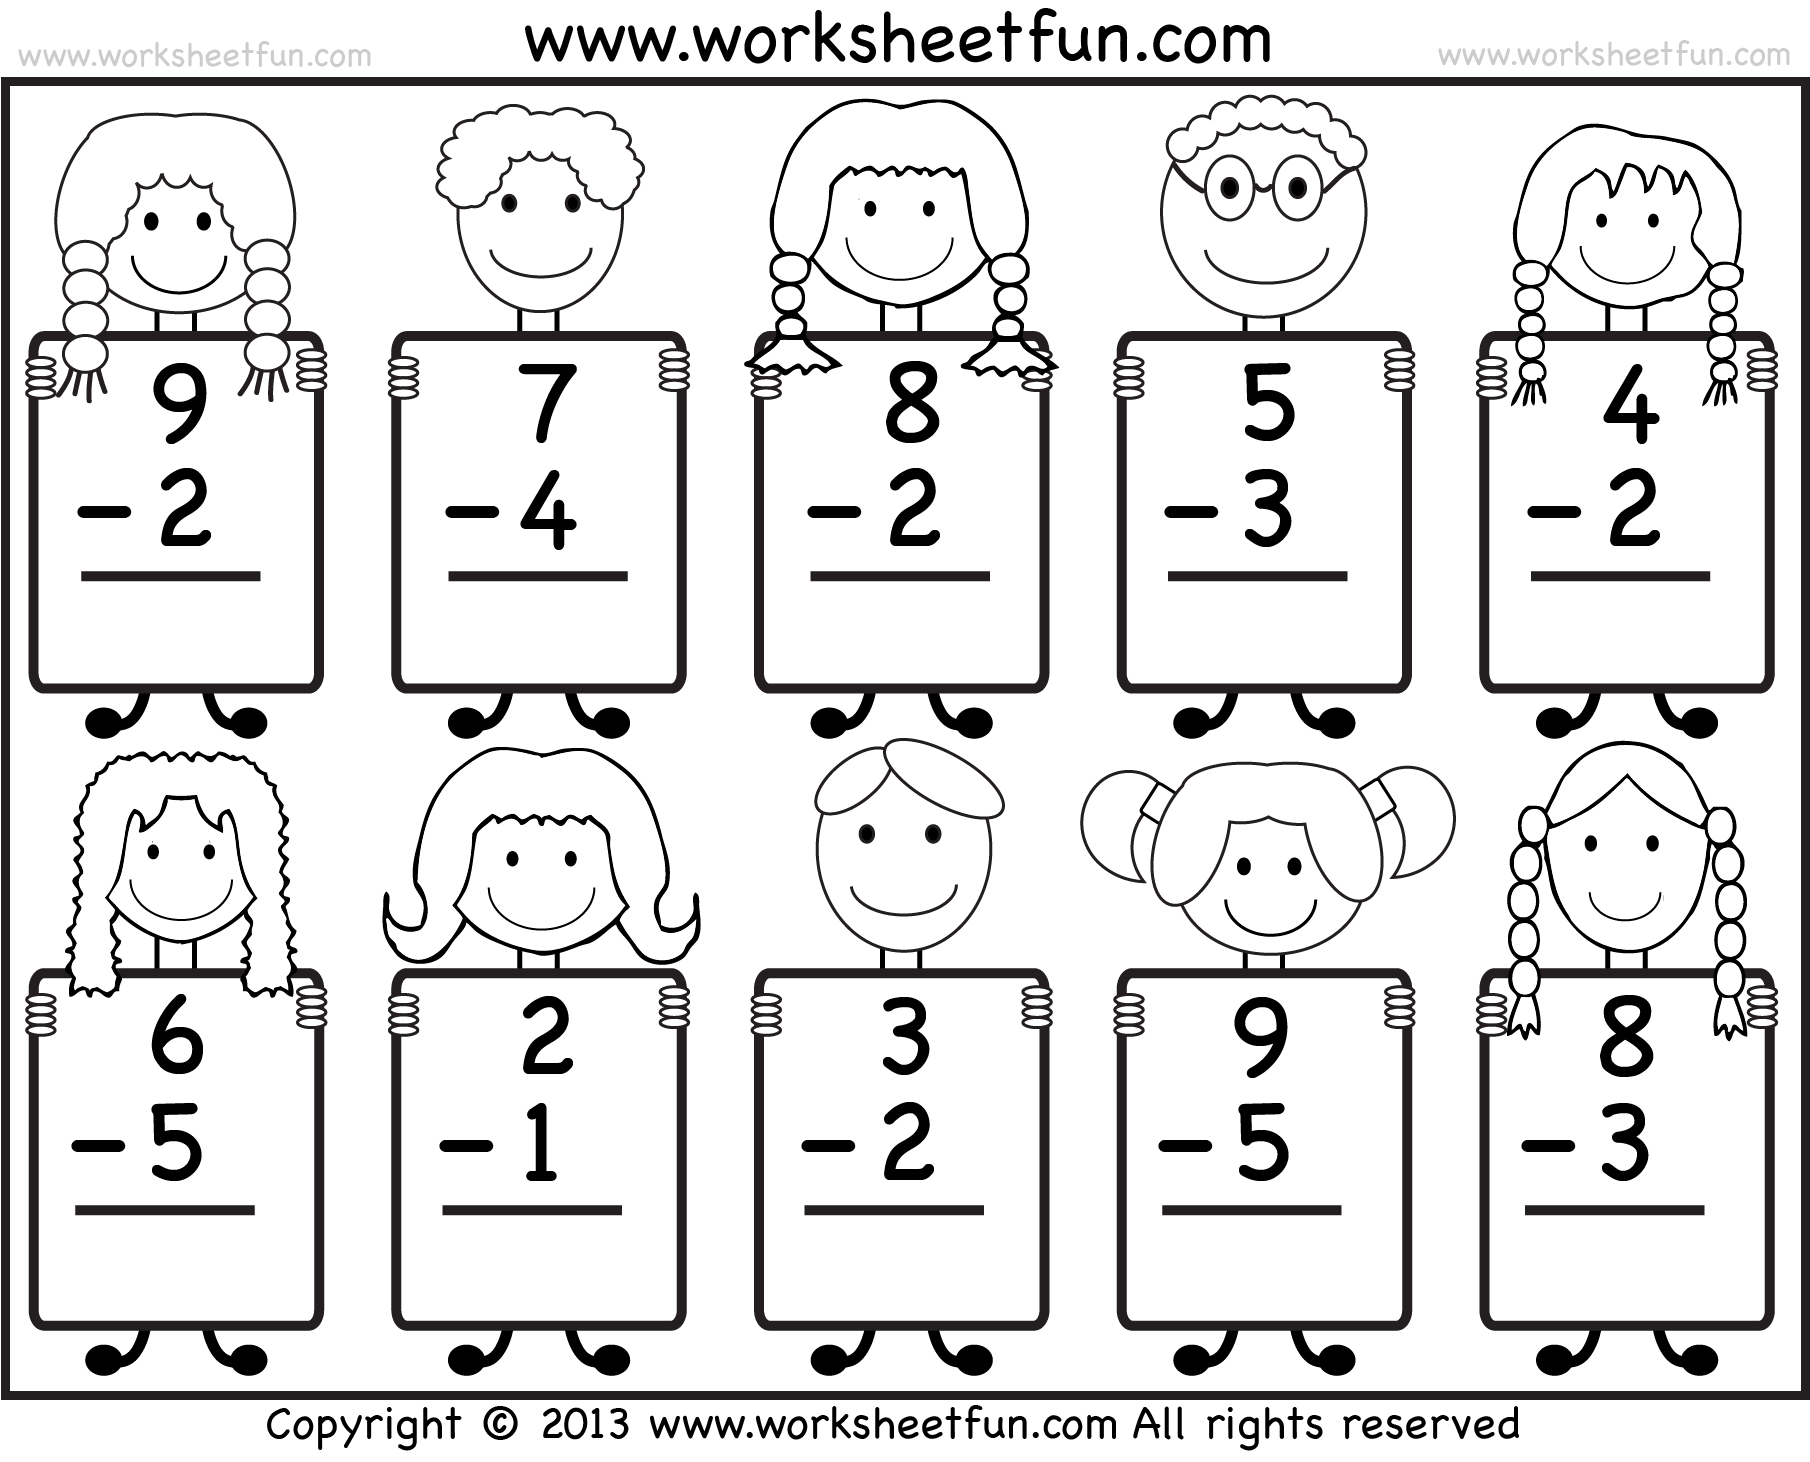 Worksheets Kindergarten Math Worksheets Free beginner subtraction 10 kindergarten worksheets subtraction